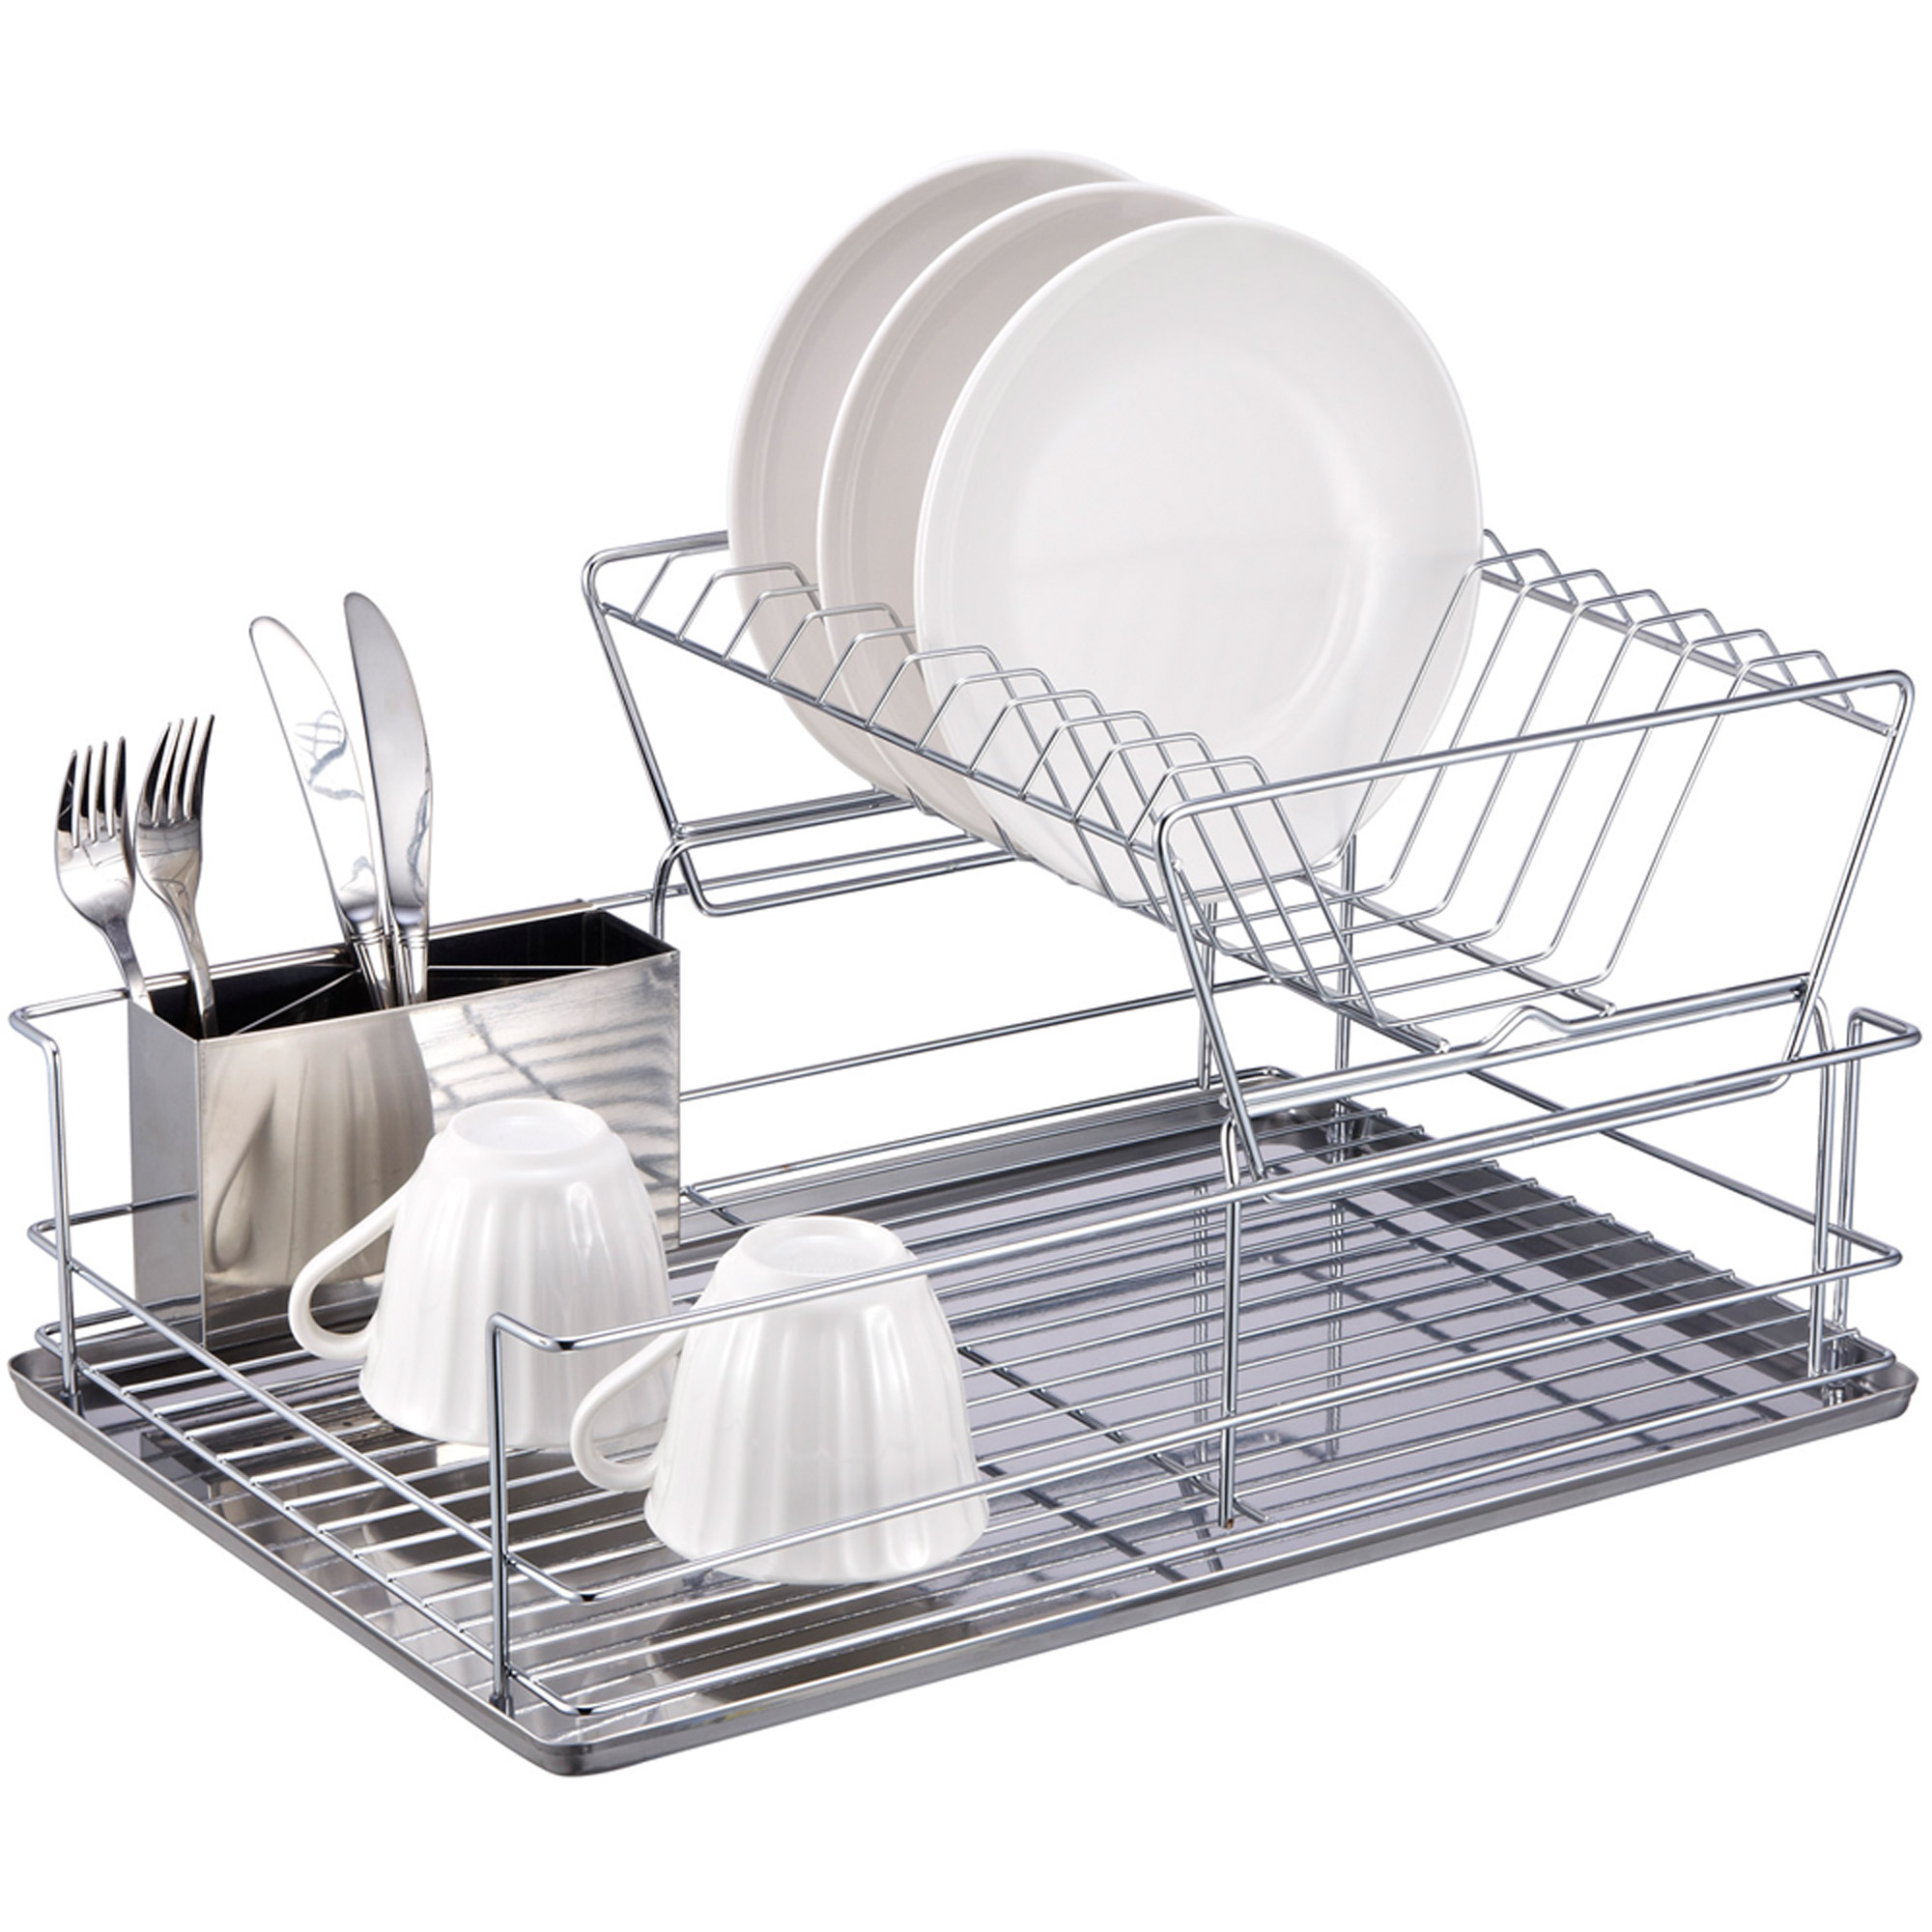 Home Basics 2-Tier Dish Rack, Chrome Stainless Steel by Generic